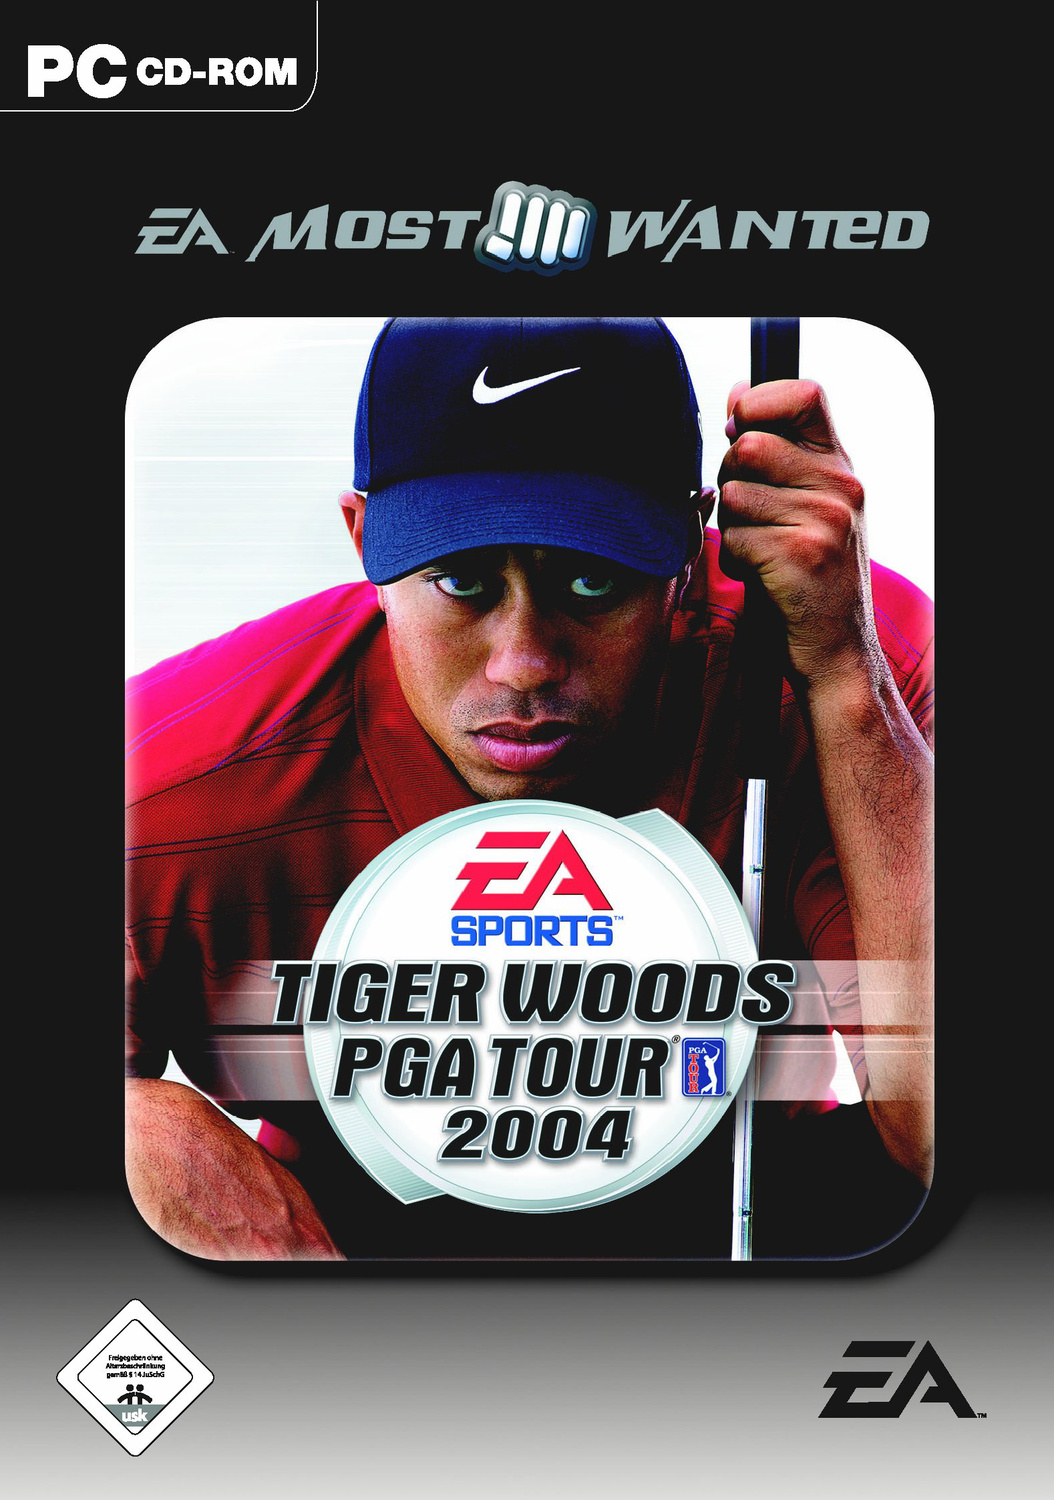 Tiger Woods PGA Tour 04 Most Wanted